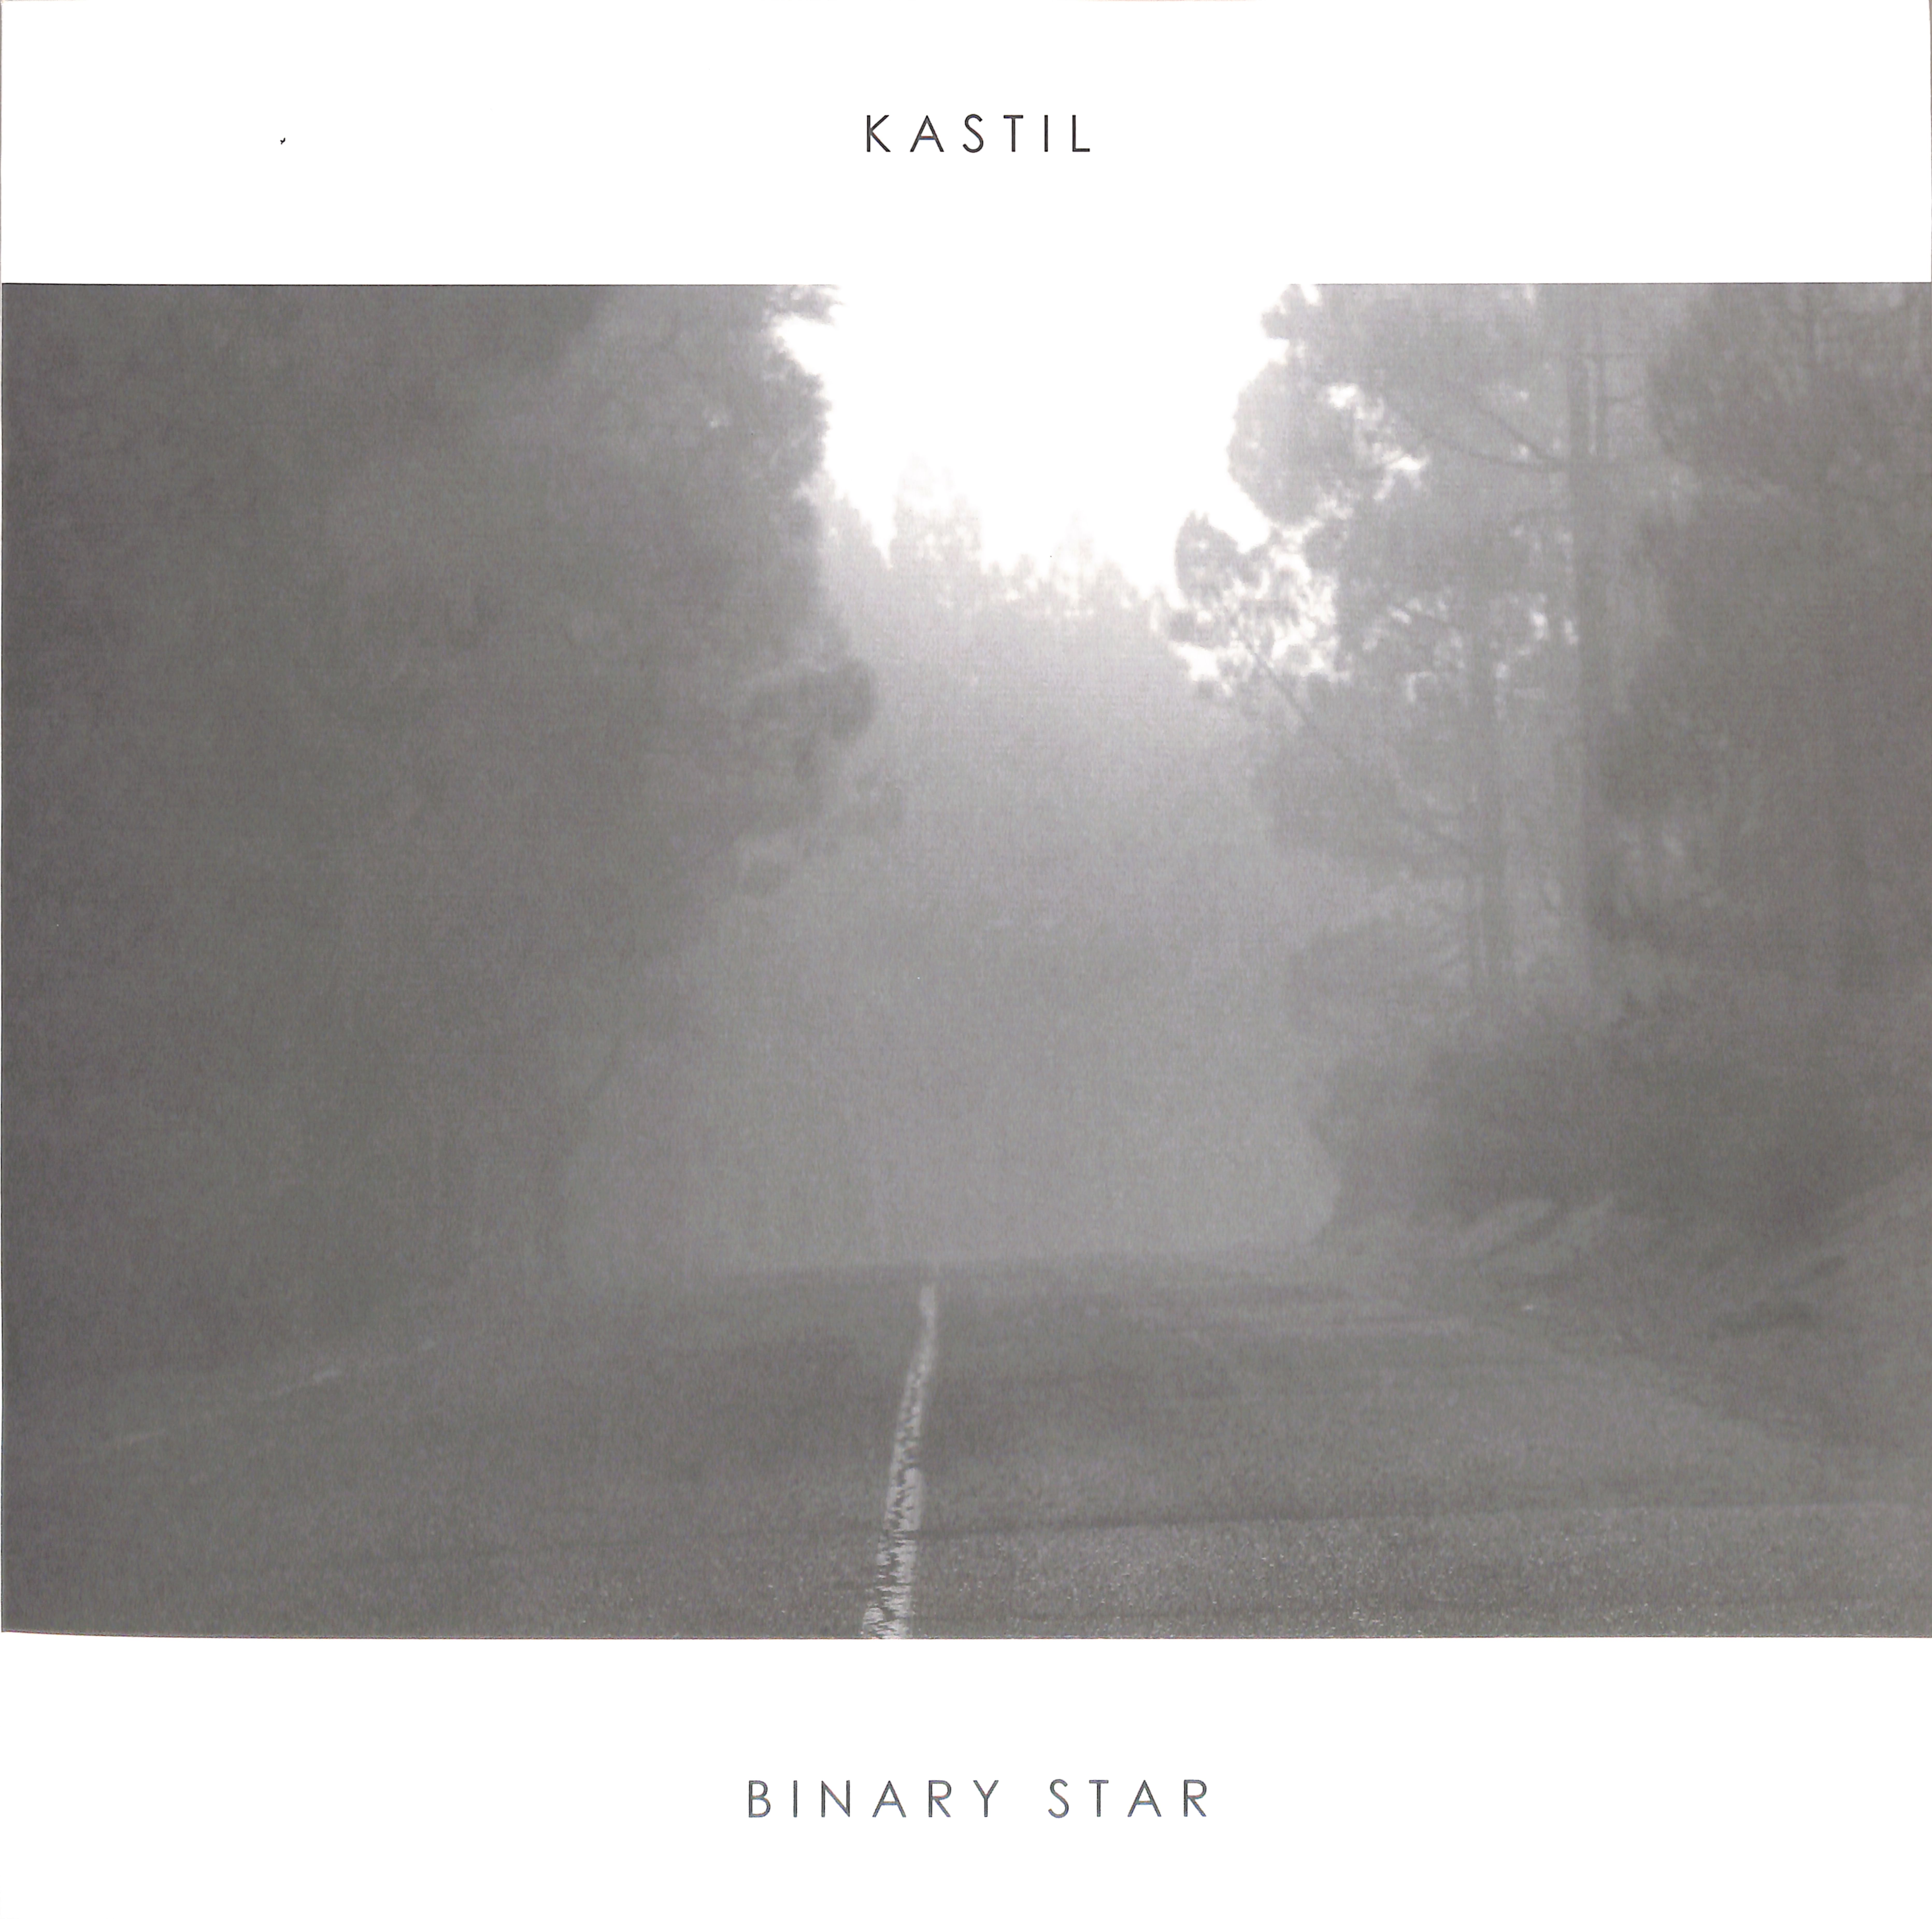 Kastil - BINARY STAR EP